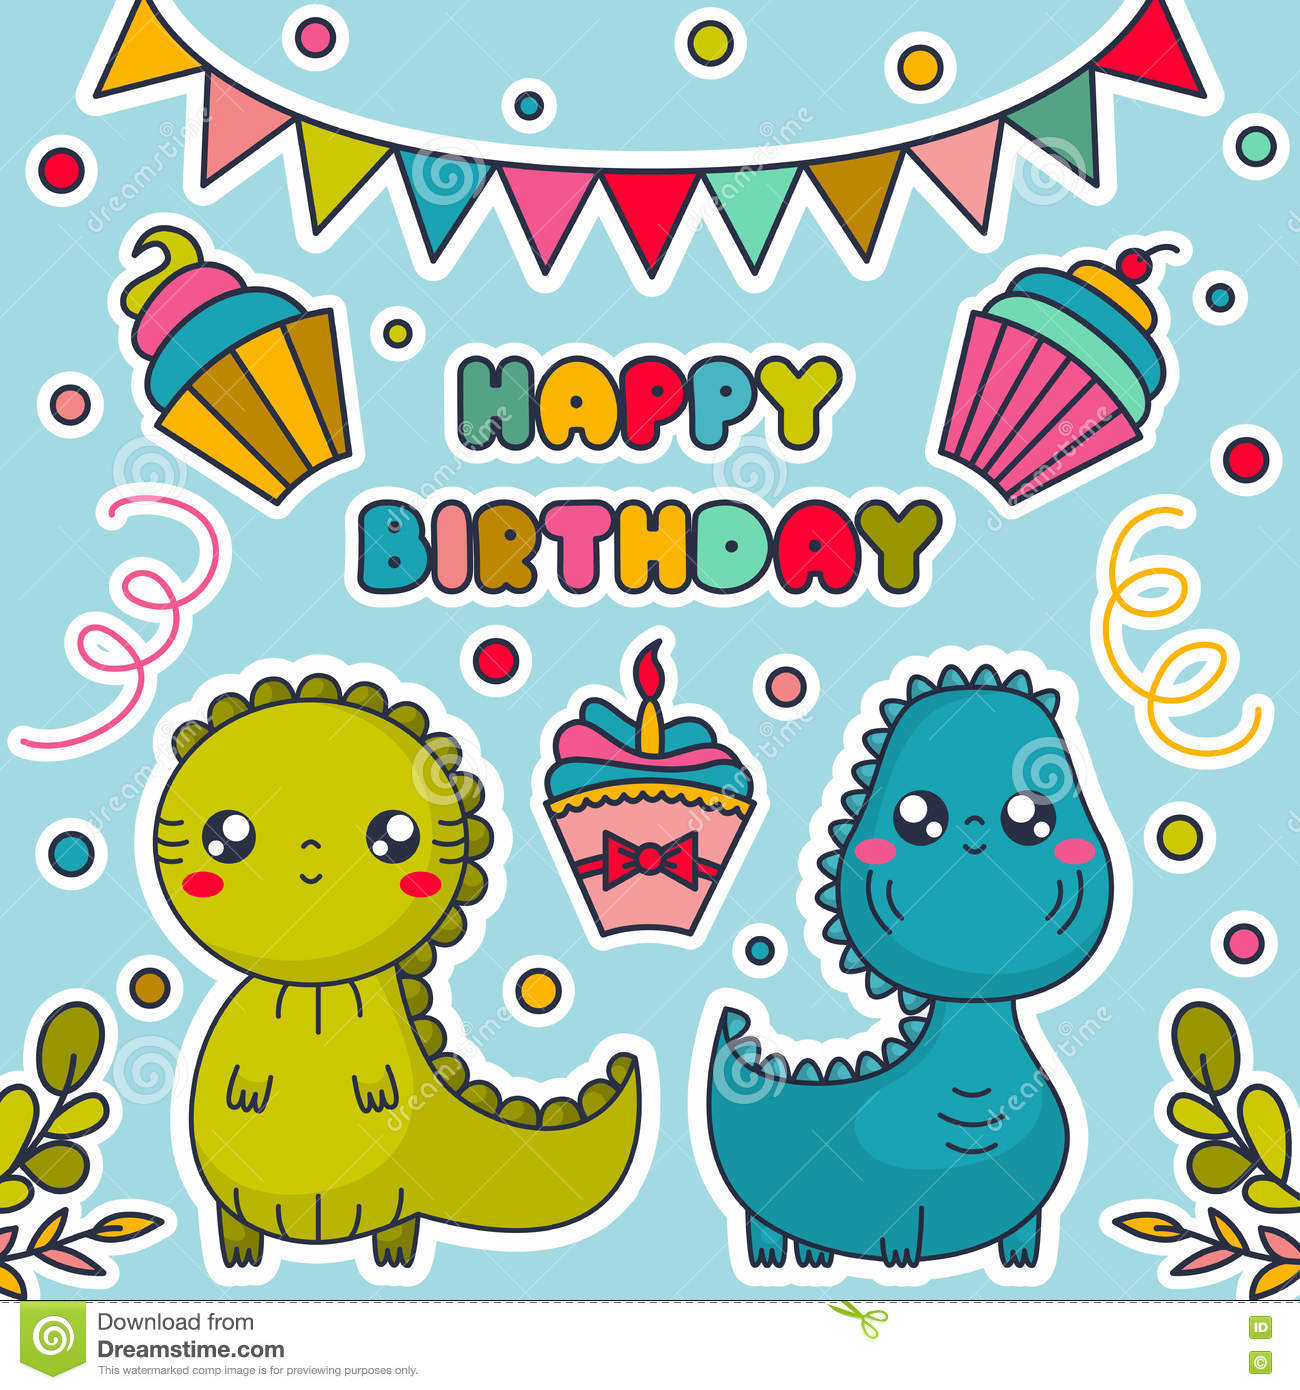 Happy Birthday Card With Kawaii Dinosaurs Cakes Bunting Flags And Confetti